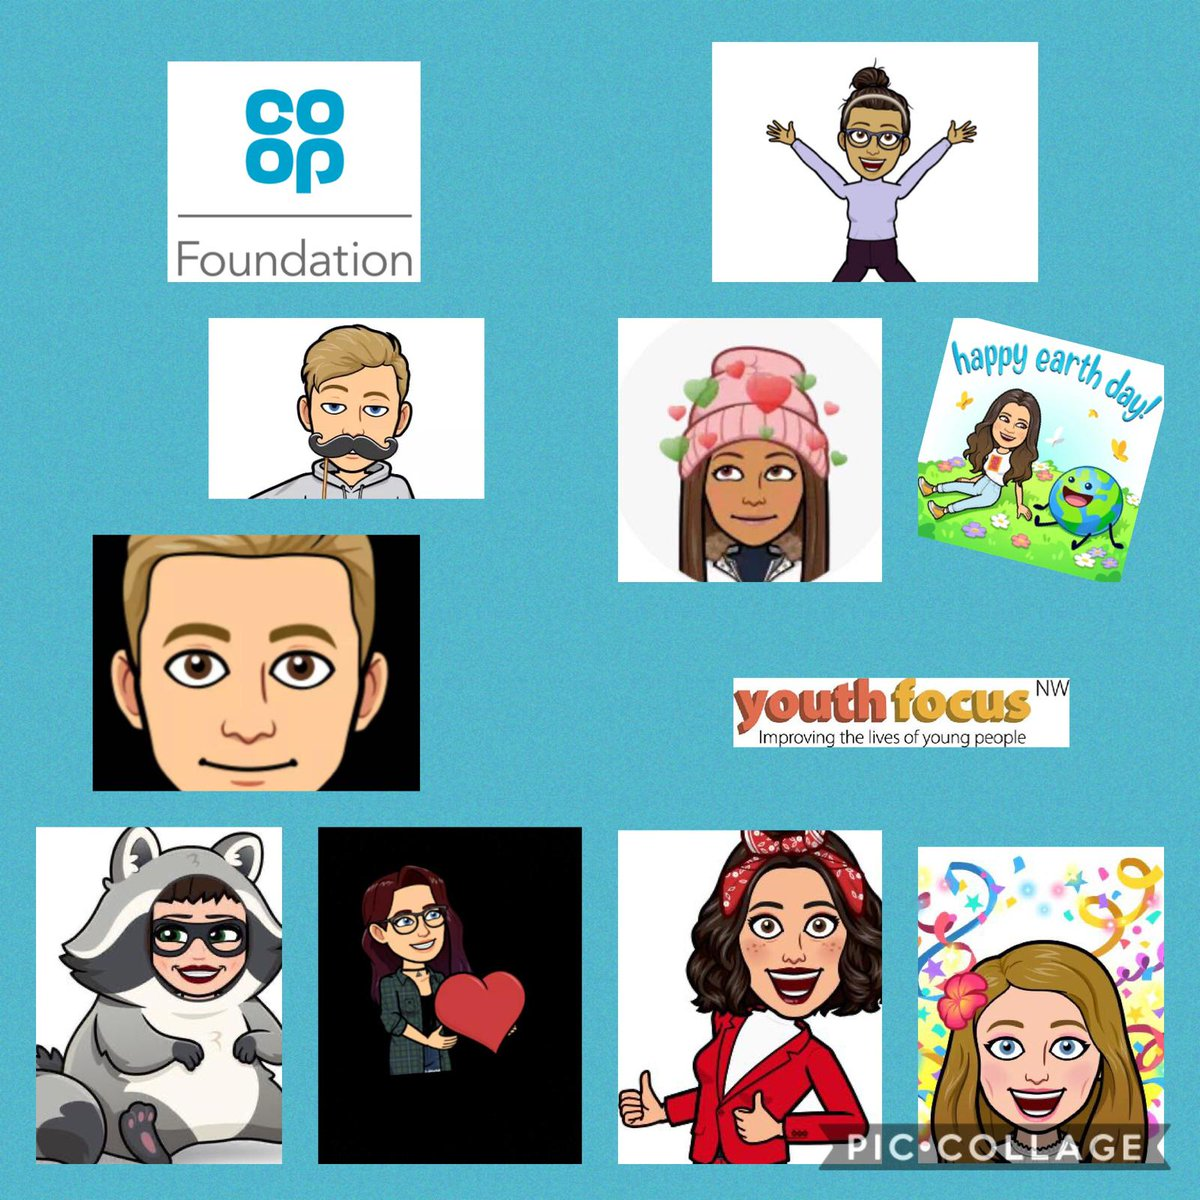 Tonight ....this team of amazing young people 👇🏼 will be working with the @Coop_Foundation making decisions on a £300k #iwill bereavement fund as the #Youthadvisorygroup   #youthvoice #makingadifference